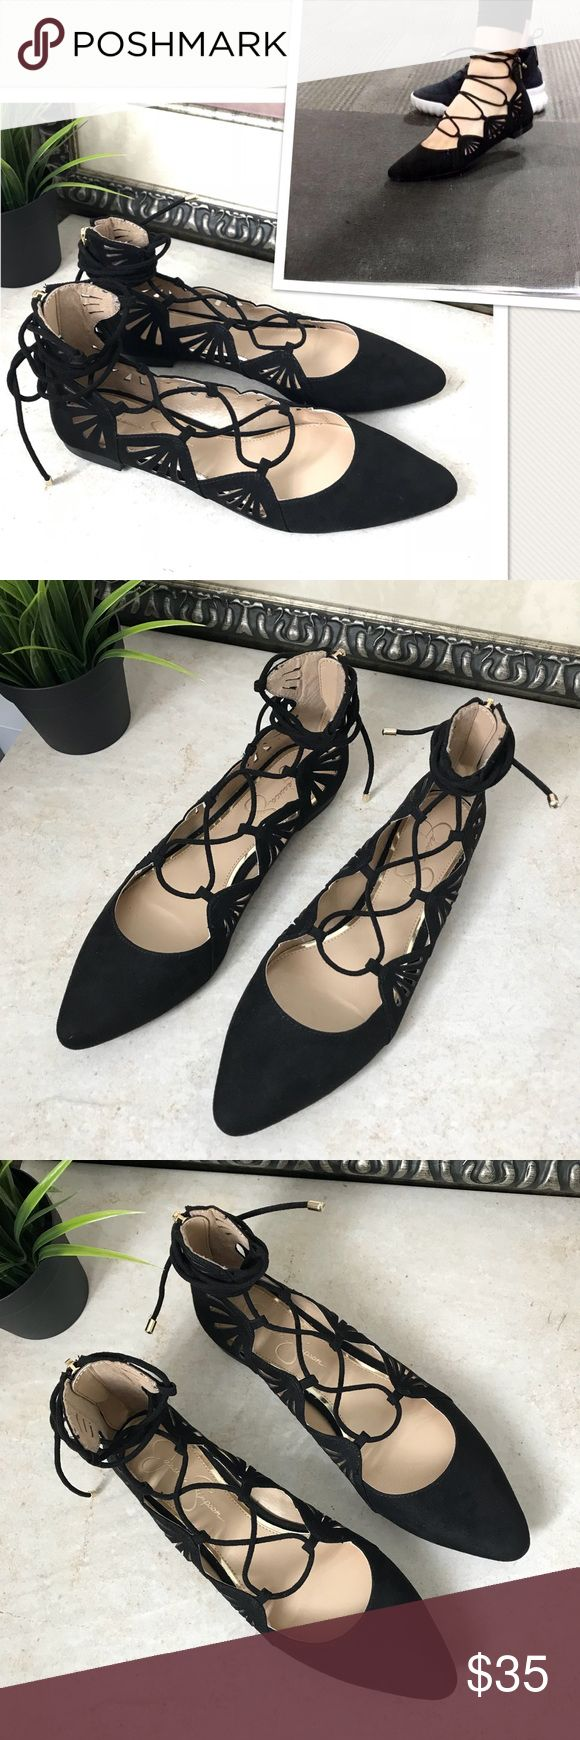 """Sale!! Jessica Simpson Lace Up Flat Shoes Black Jessica Simpson """"Zellen"""" Ballet Flat Shoes Lace Up   Size: 7   New Without Box   FEATURES Faux suede upper Back zipper for easy on/off Ghillie lace-up with wrap around ankle tie Pointed toe Synthetic sole Jessica Simpson Shoes Flats & Loafers"""